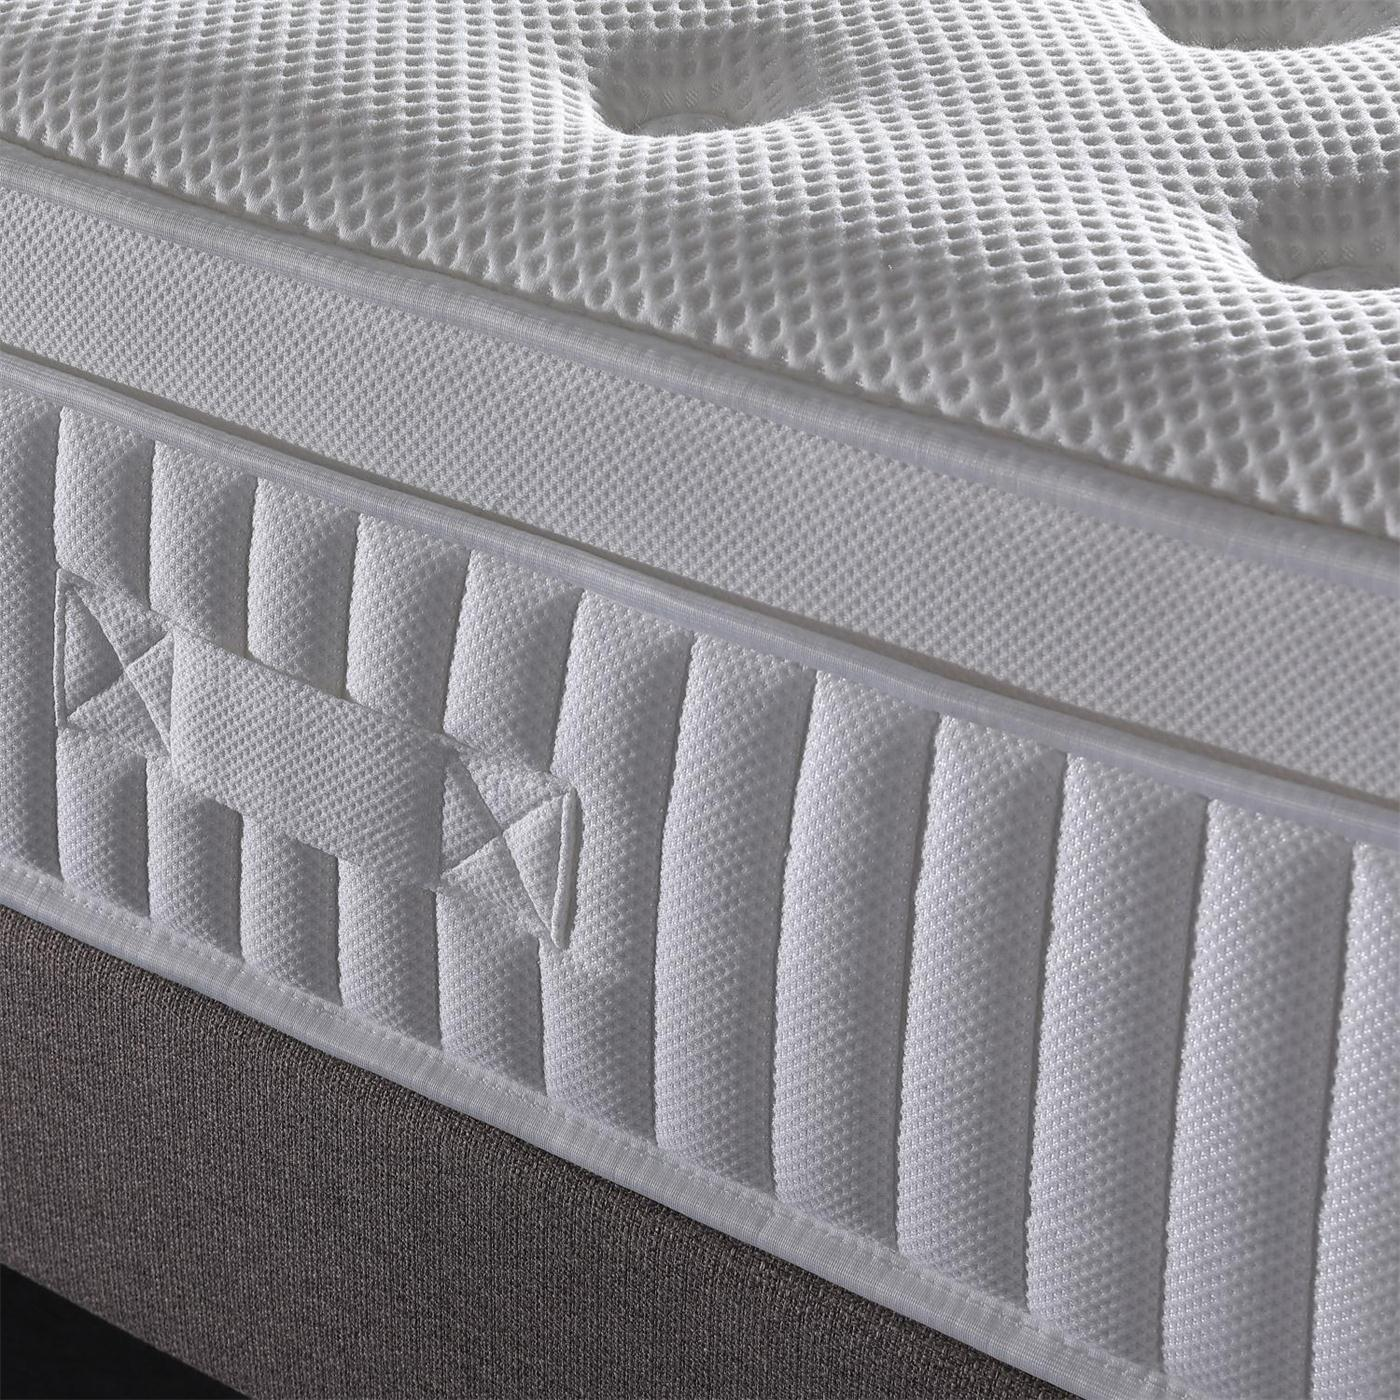 Fansace 34PA-02 Hotel Soft Sofa Bed Mattress With Euro Top Design For 5 Star Hotel